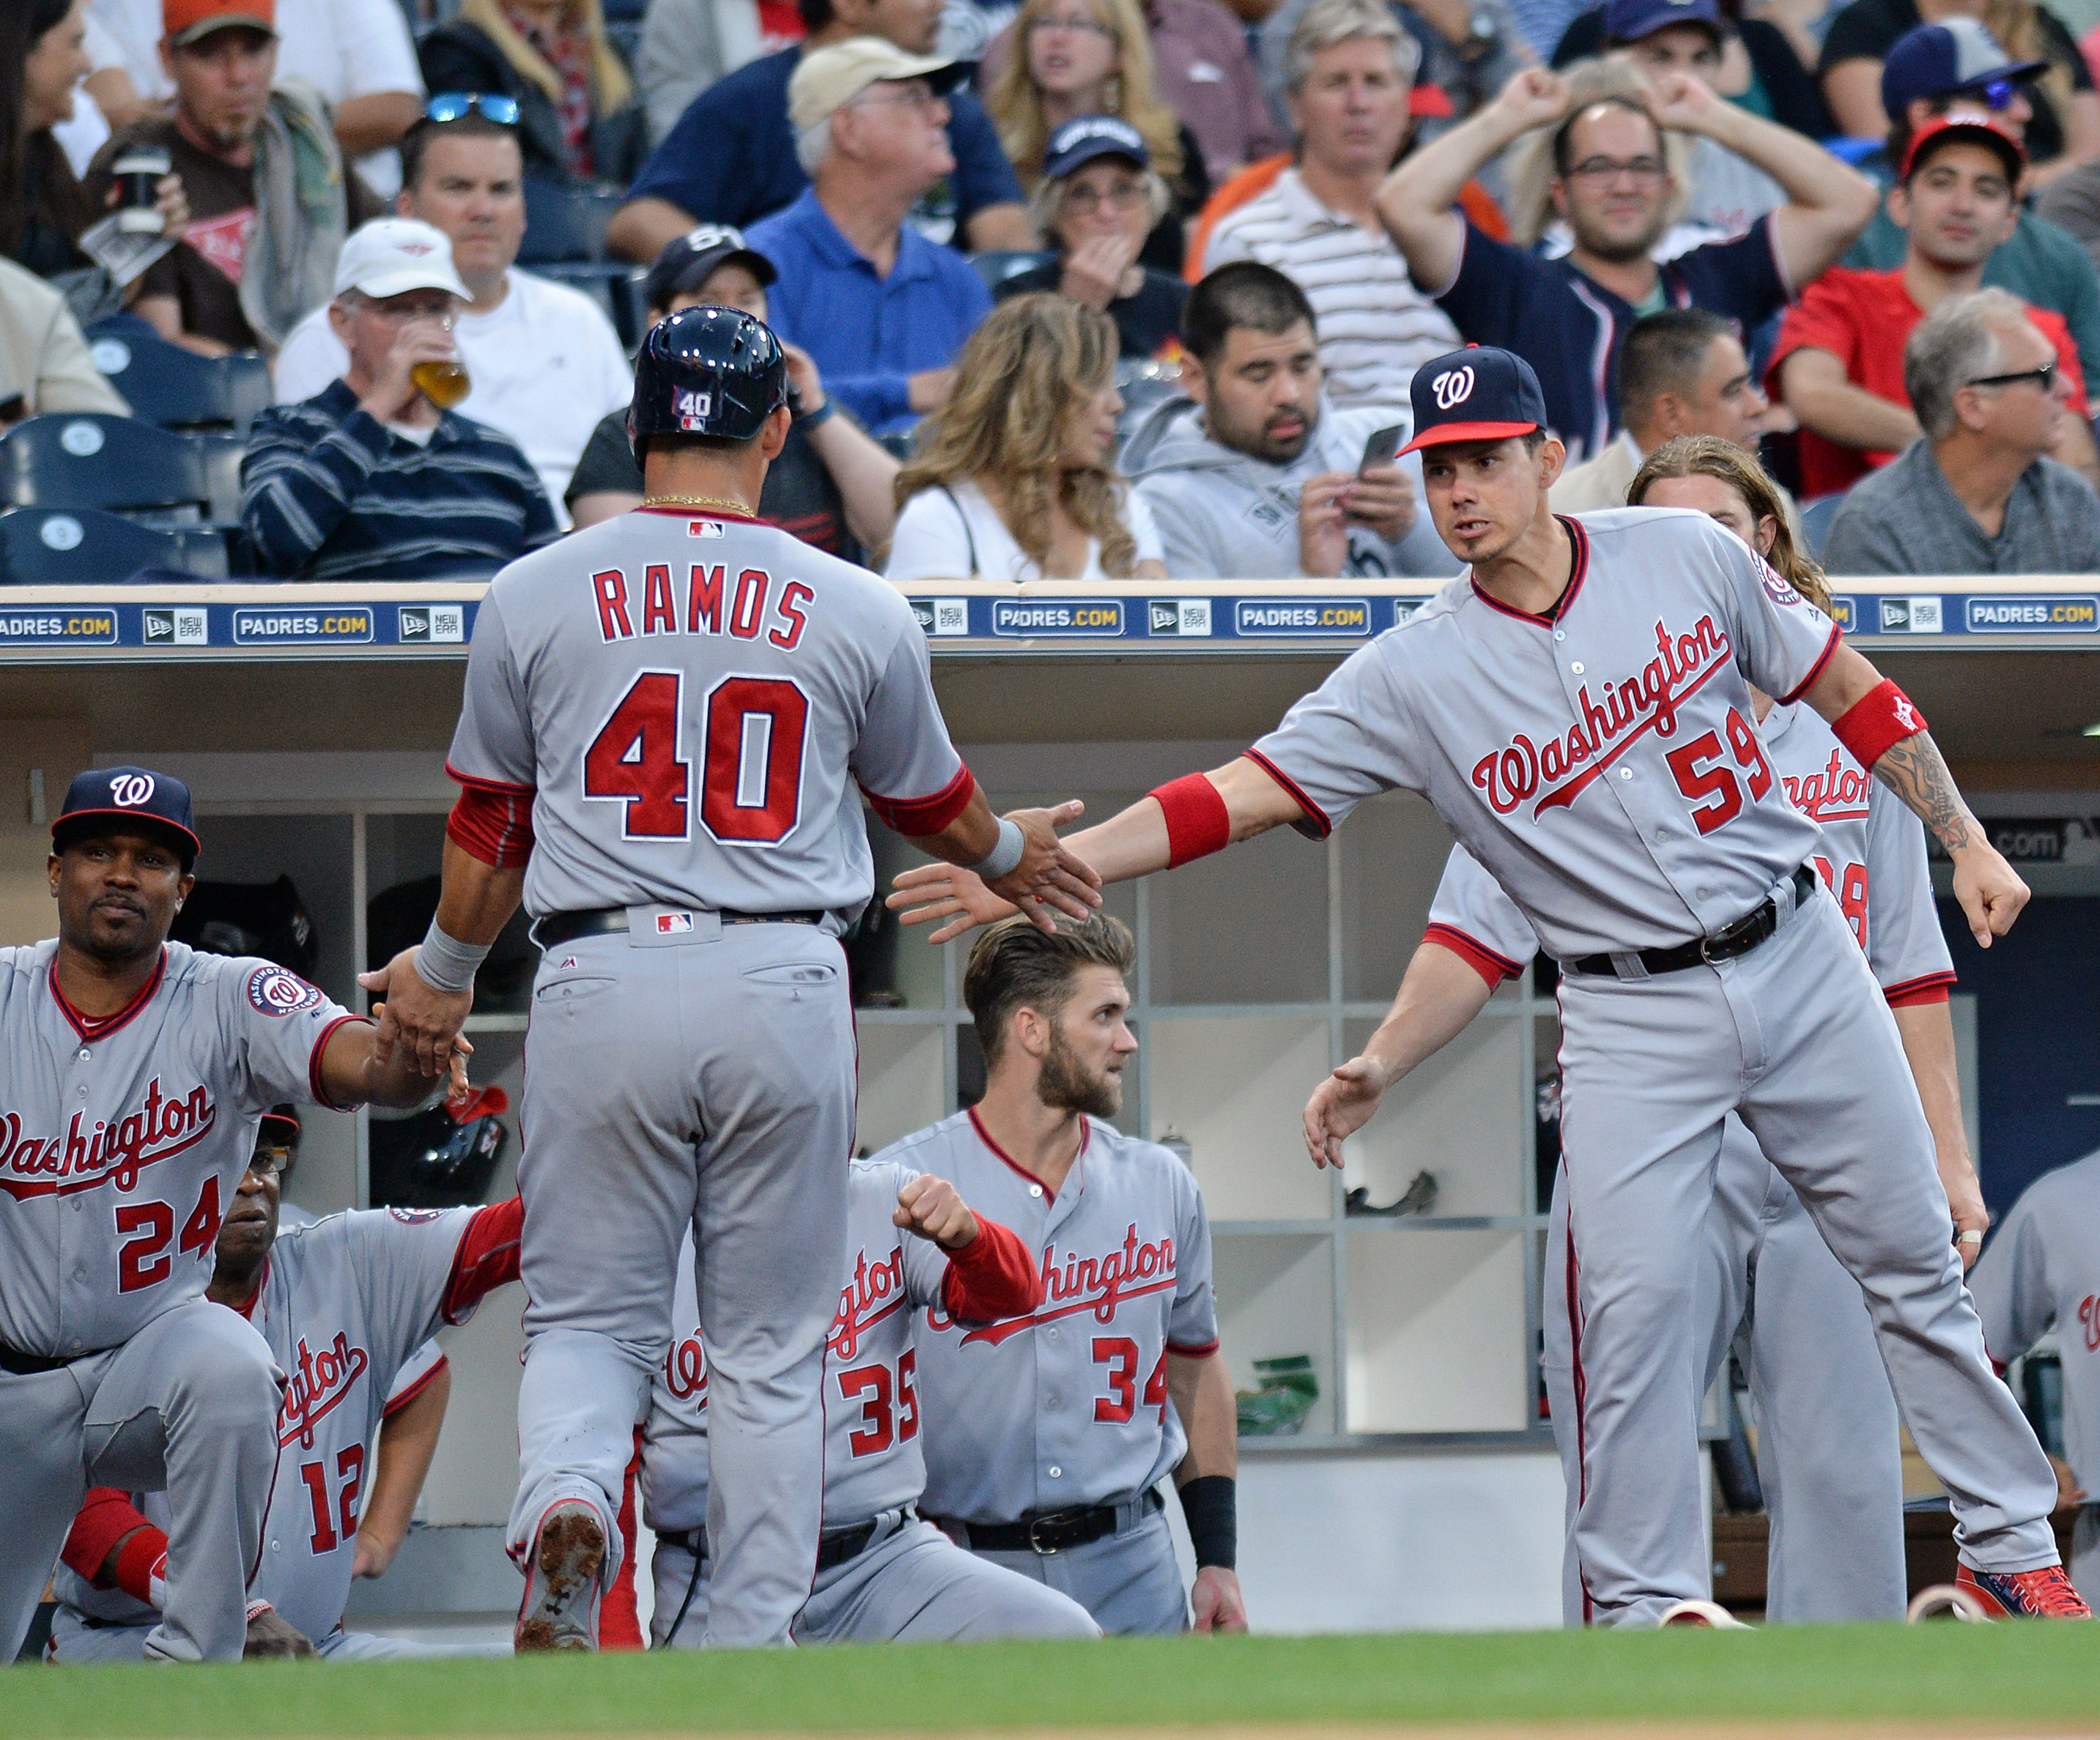 Every player wishes they could have their career year right before they hit free agency. Wilson Ramos is living the dream right now.